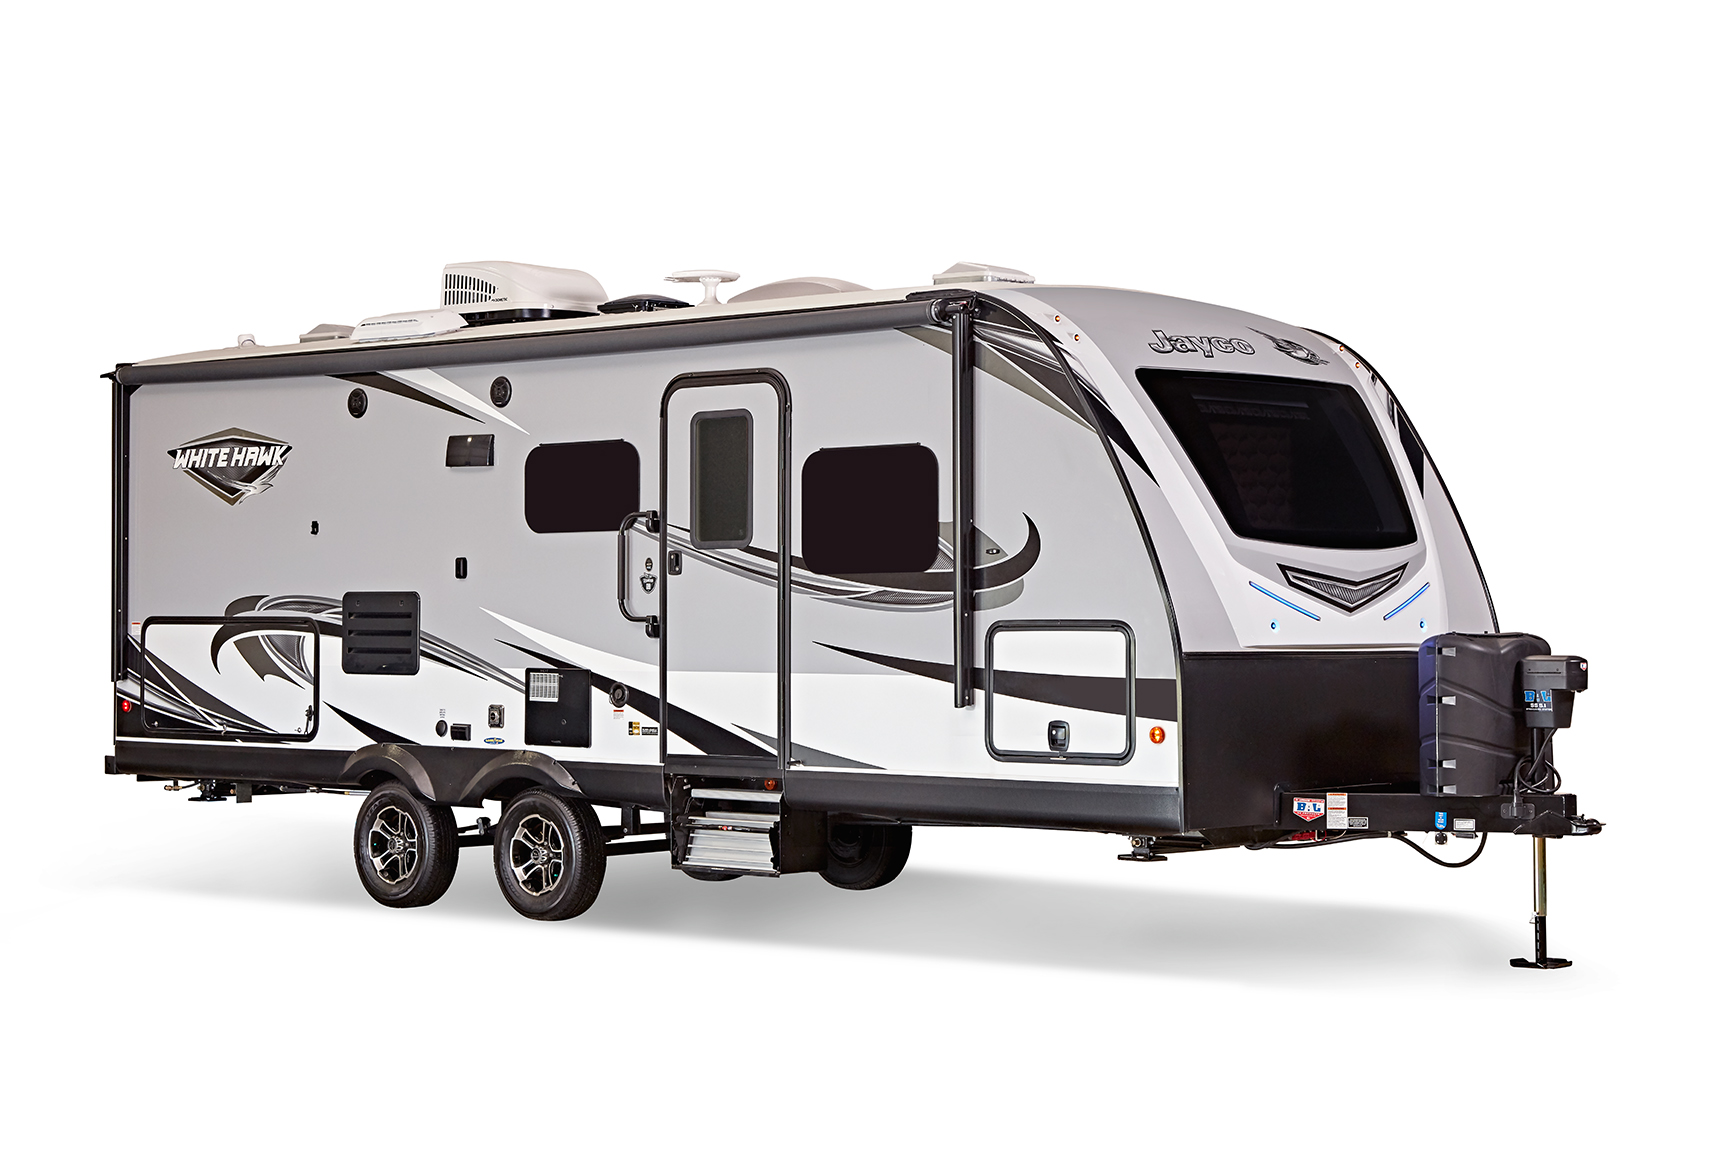 Top 5 Travel Trailers With King Beds